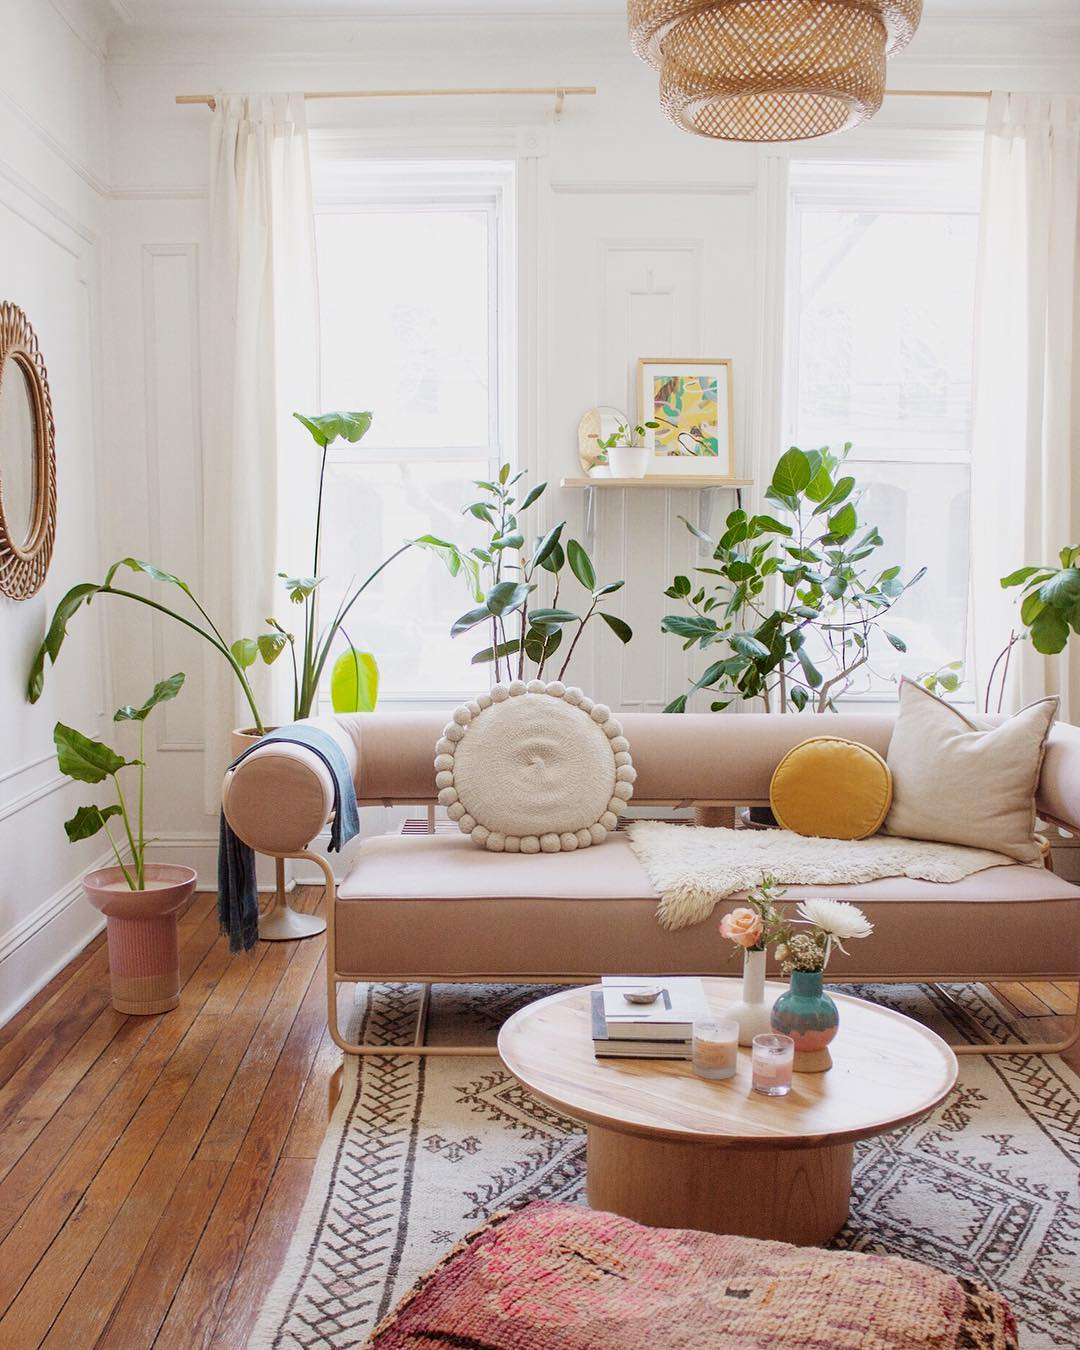 Pink boho chic living room in Brooklyn apartment of Mallory Fletchall.